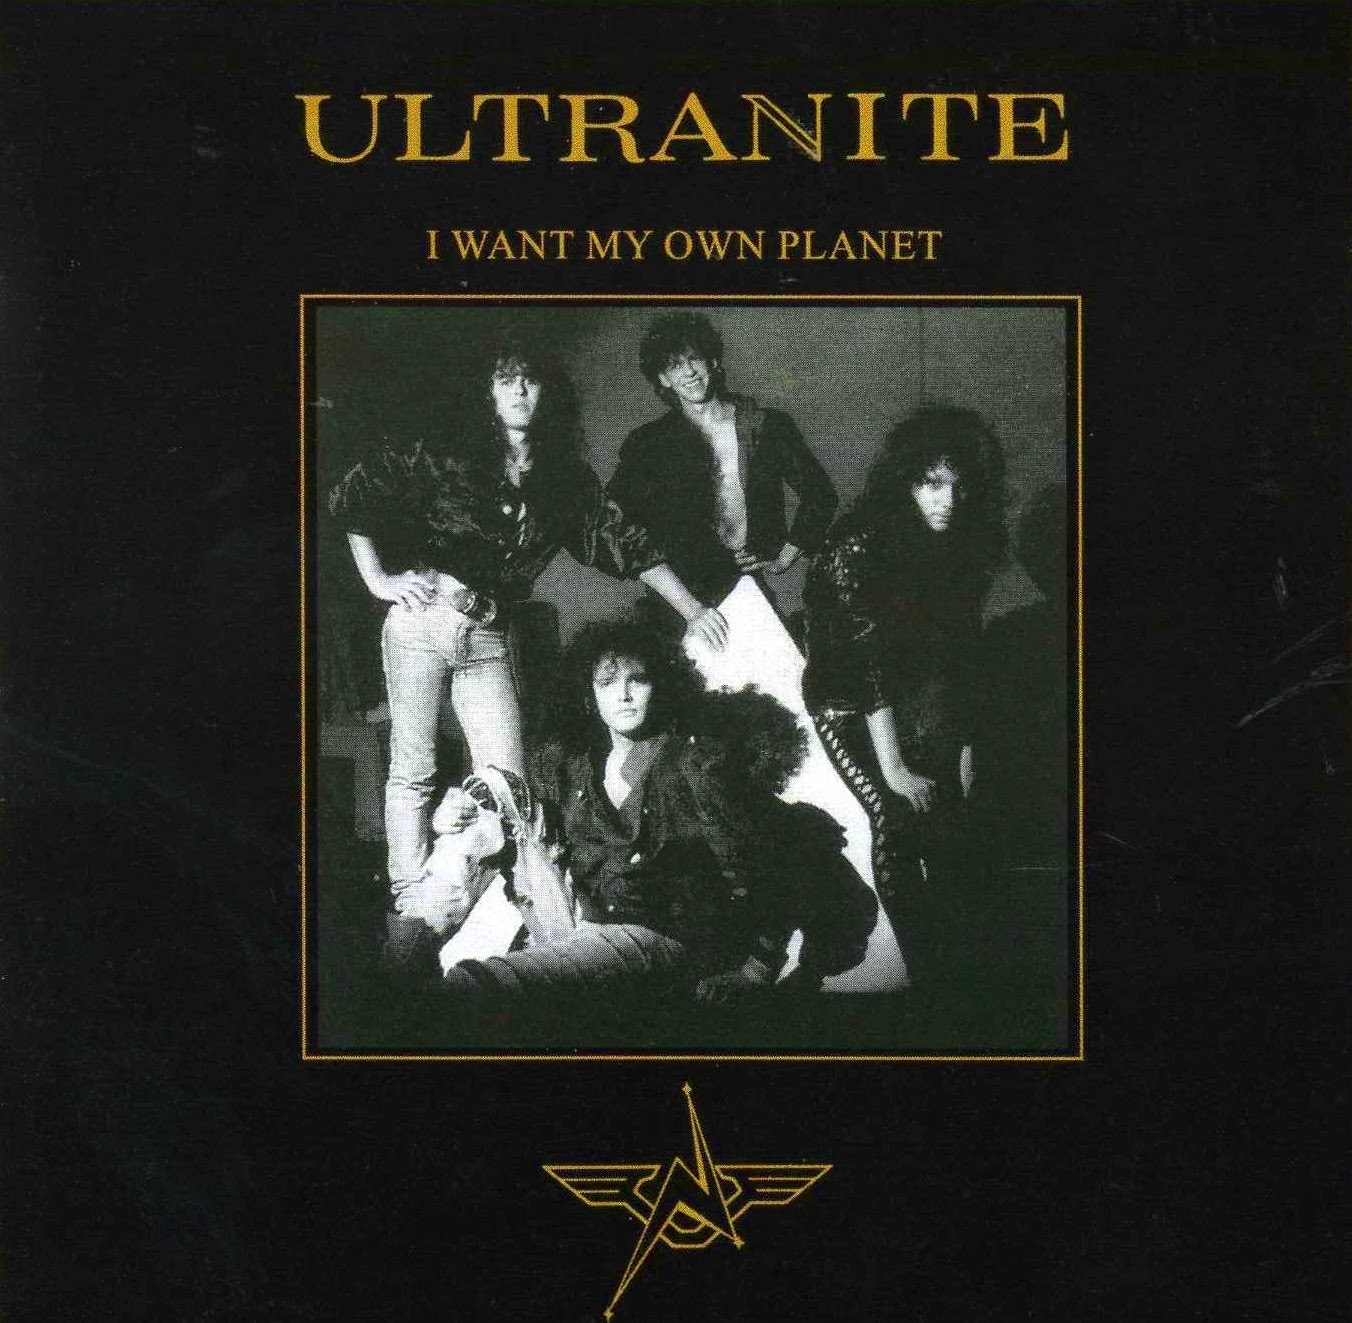 Ultranite I want my own planet 1989 aor melodic rock music blogspot albums bands